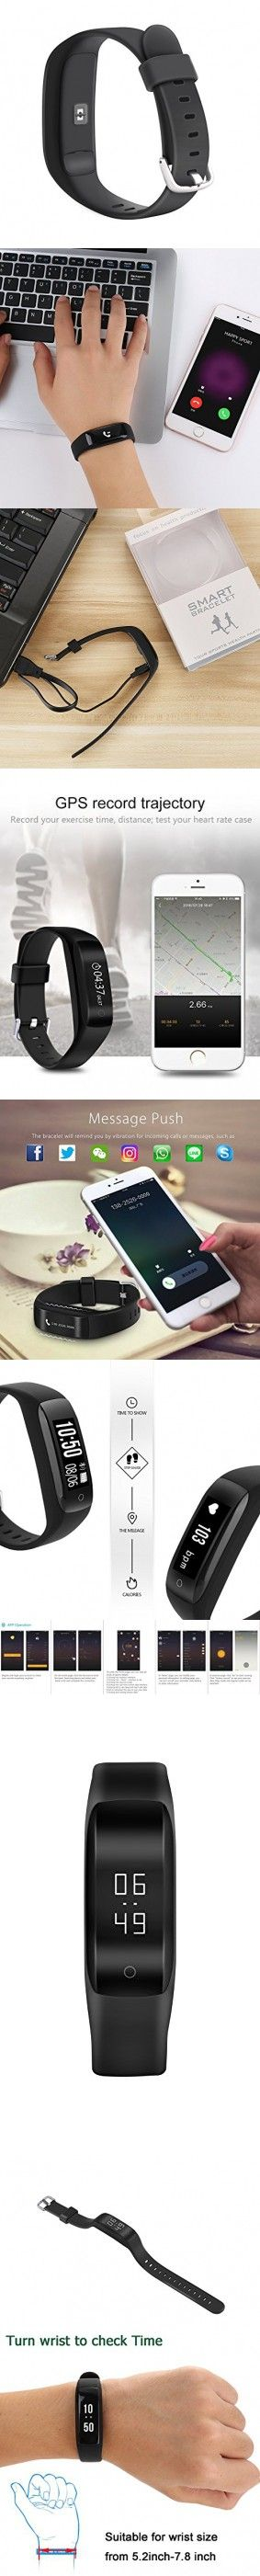 Ansbo Smart Wristband Smart Bracelet Bluetooth Band With Fitness Tracker With Heart Rate Pedometer Calorie Step Distance Sleep Monitor Call Message Remind For Android and IOS Smartphone